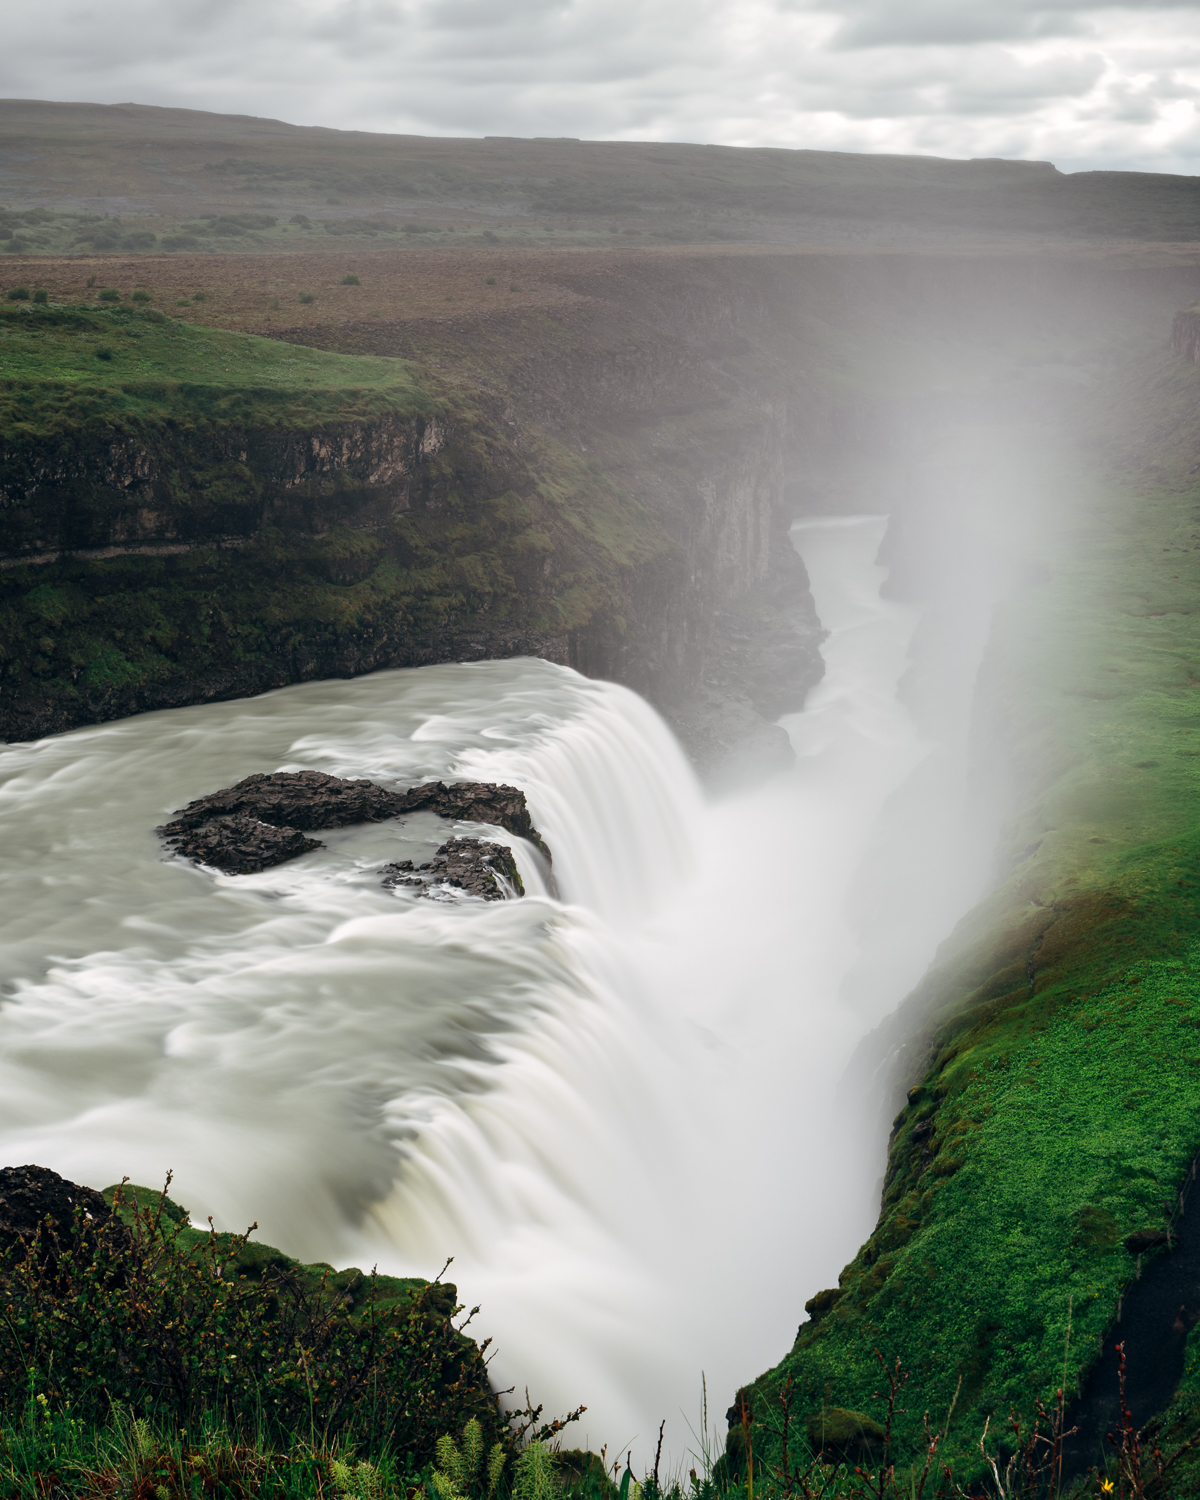 Another view of Gulfoss that shows the crevice where the water seems to disappear in the image above